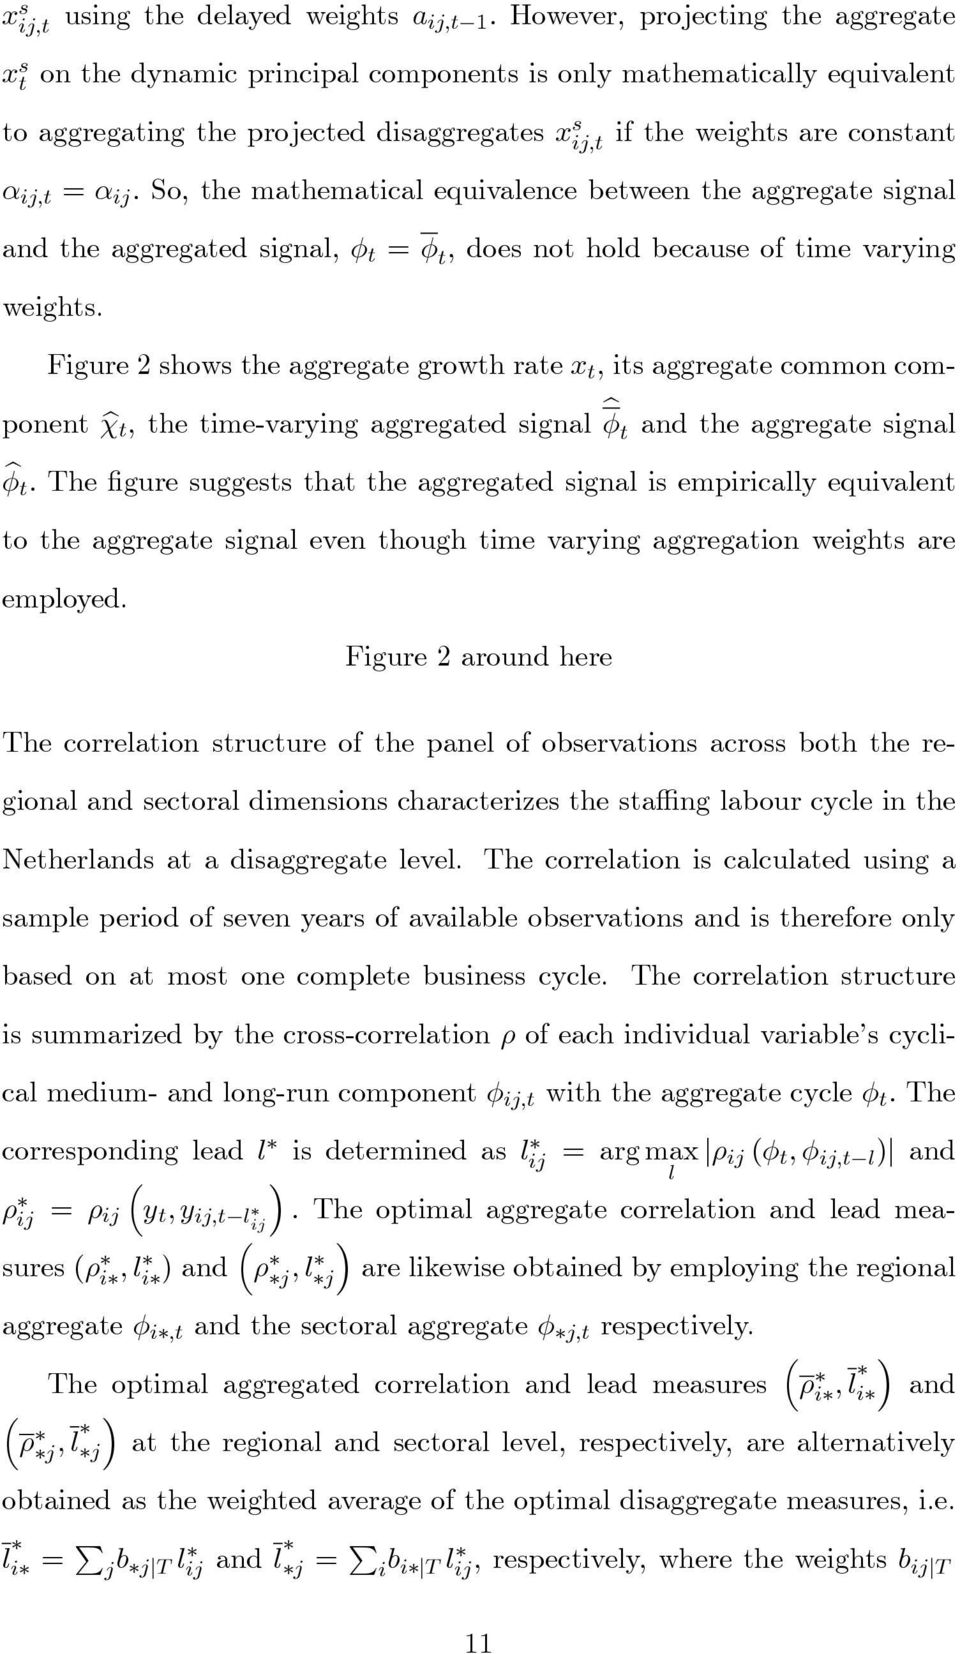 Figure 2 shows the aggregate growth rate x t, its aggregate common component b t ; the time-varying aggregated signal b t and the aggregate signal b t : The gure suggests that the aggregated signal